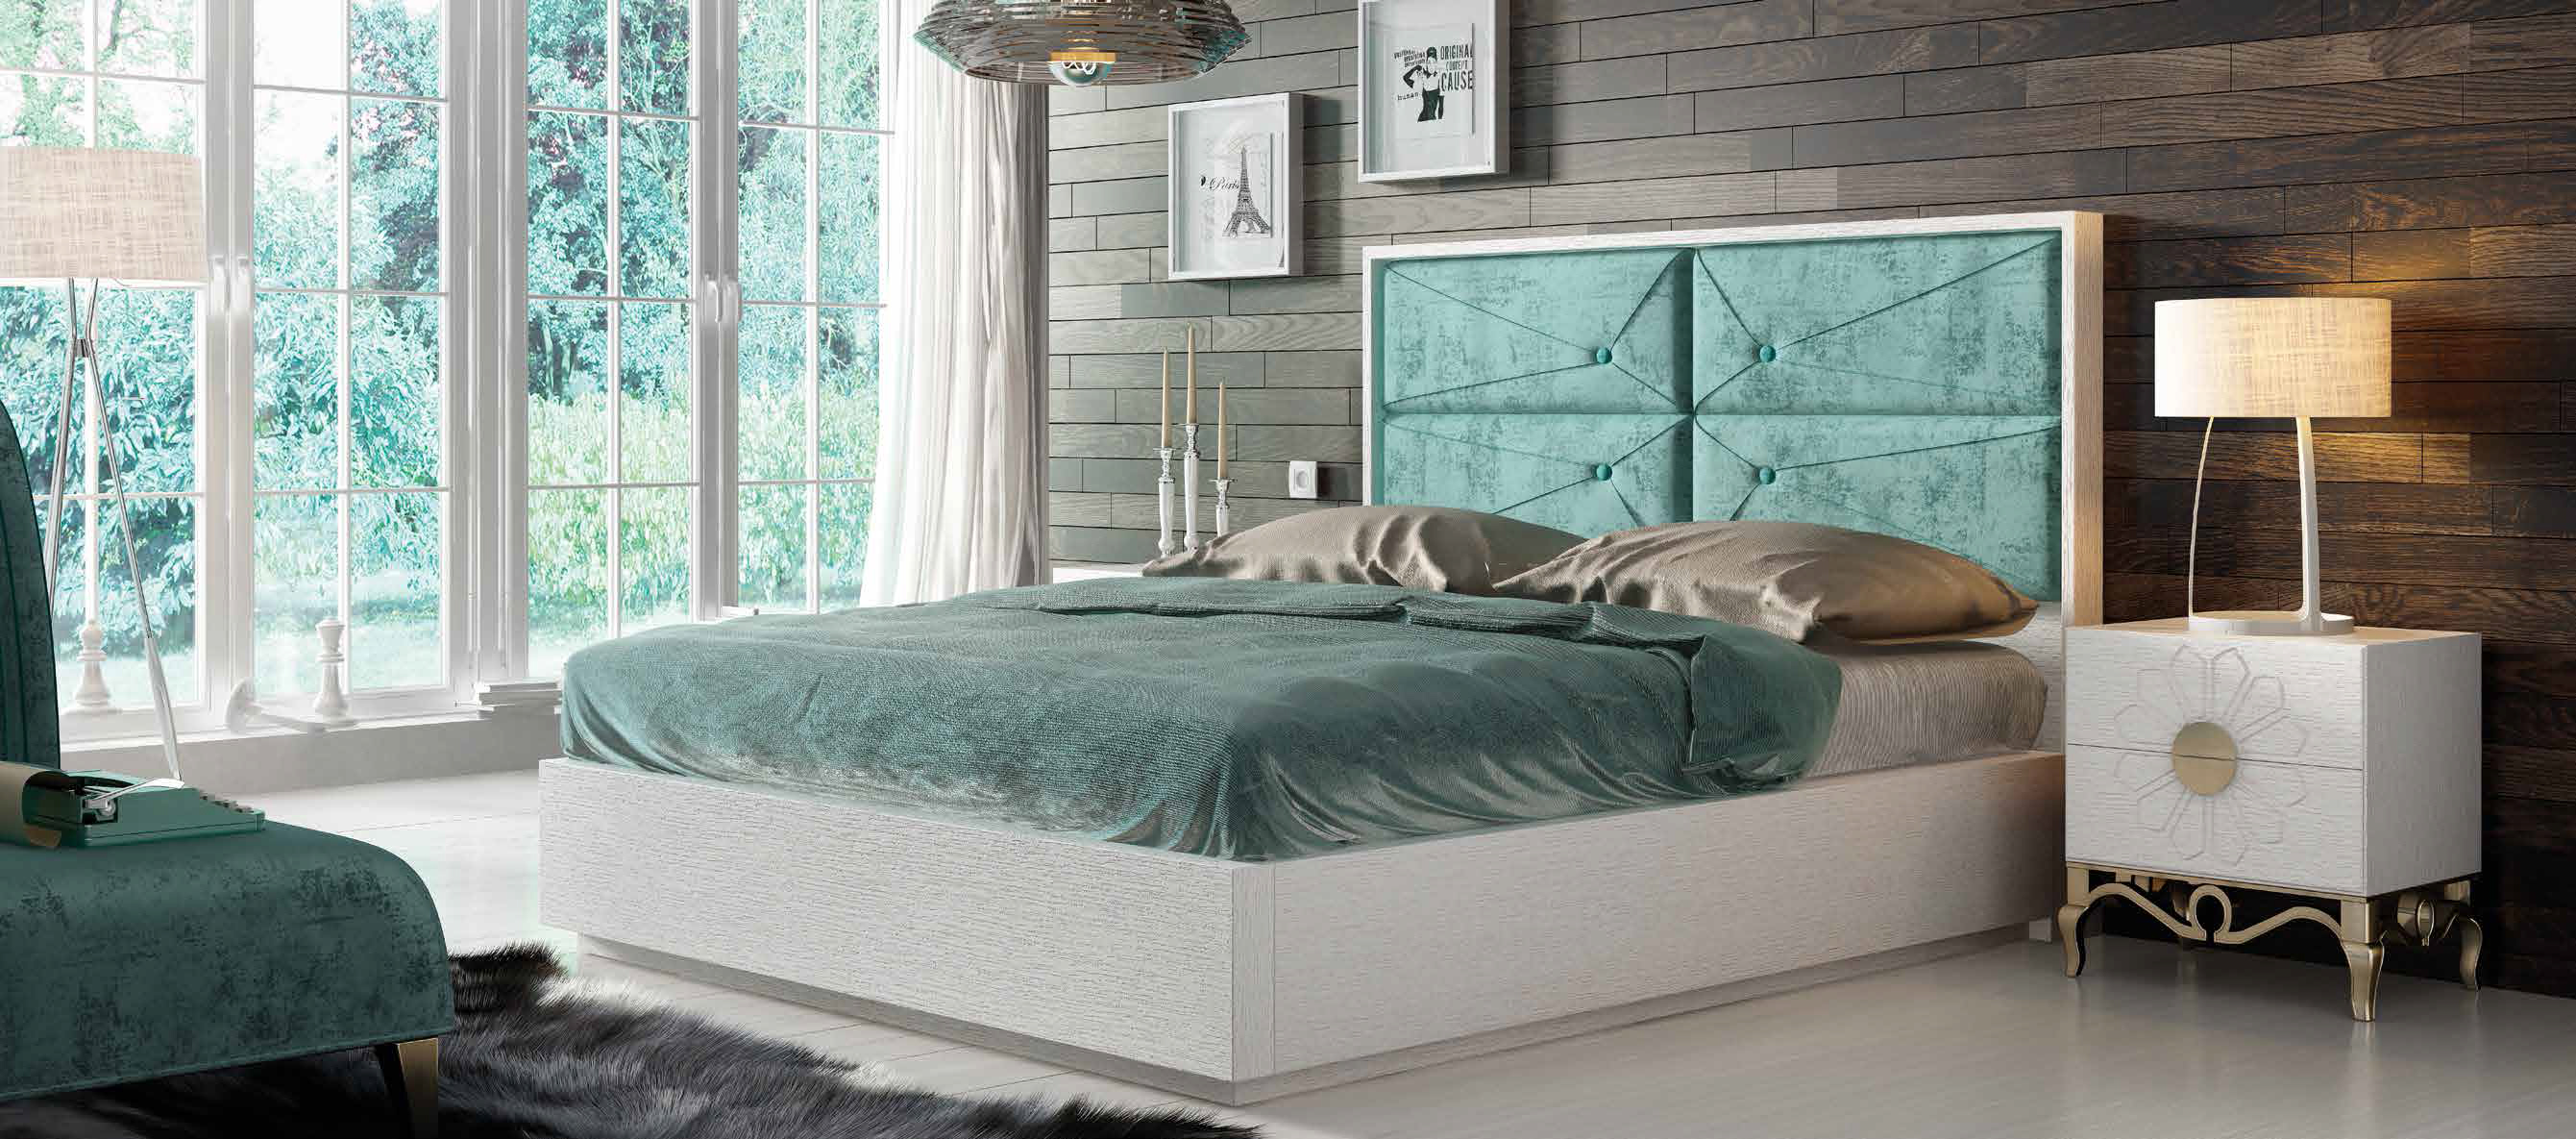 Brands Franco Furniture Bedrooms vol1, Spain DOR 63